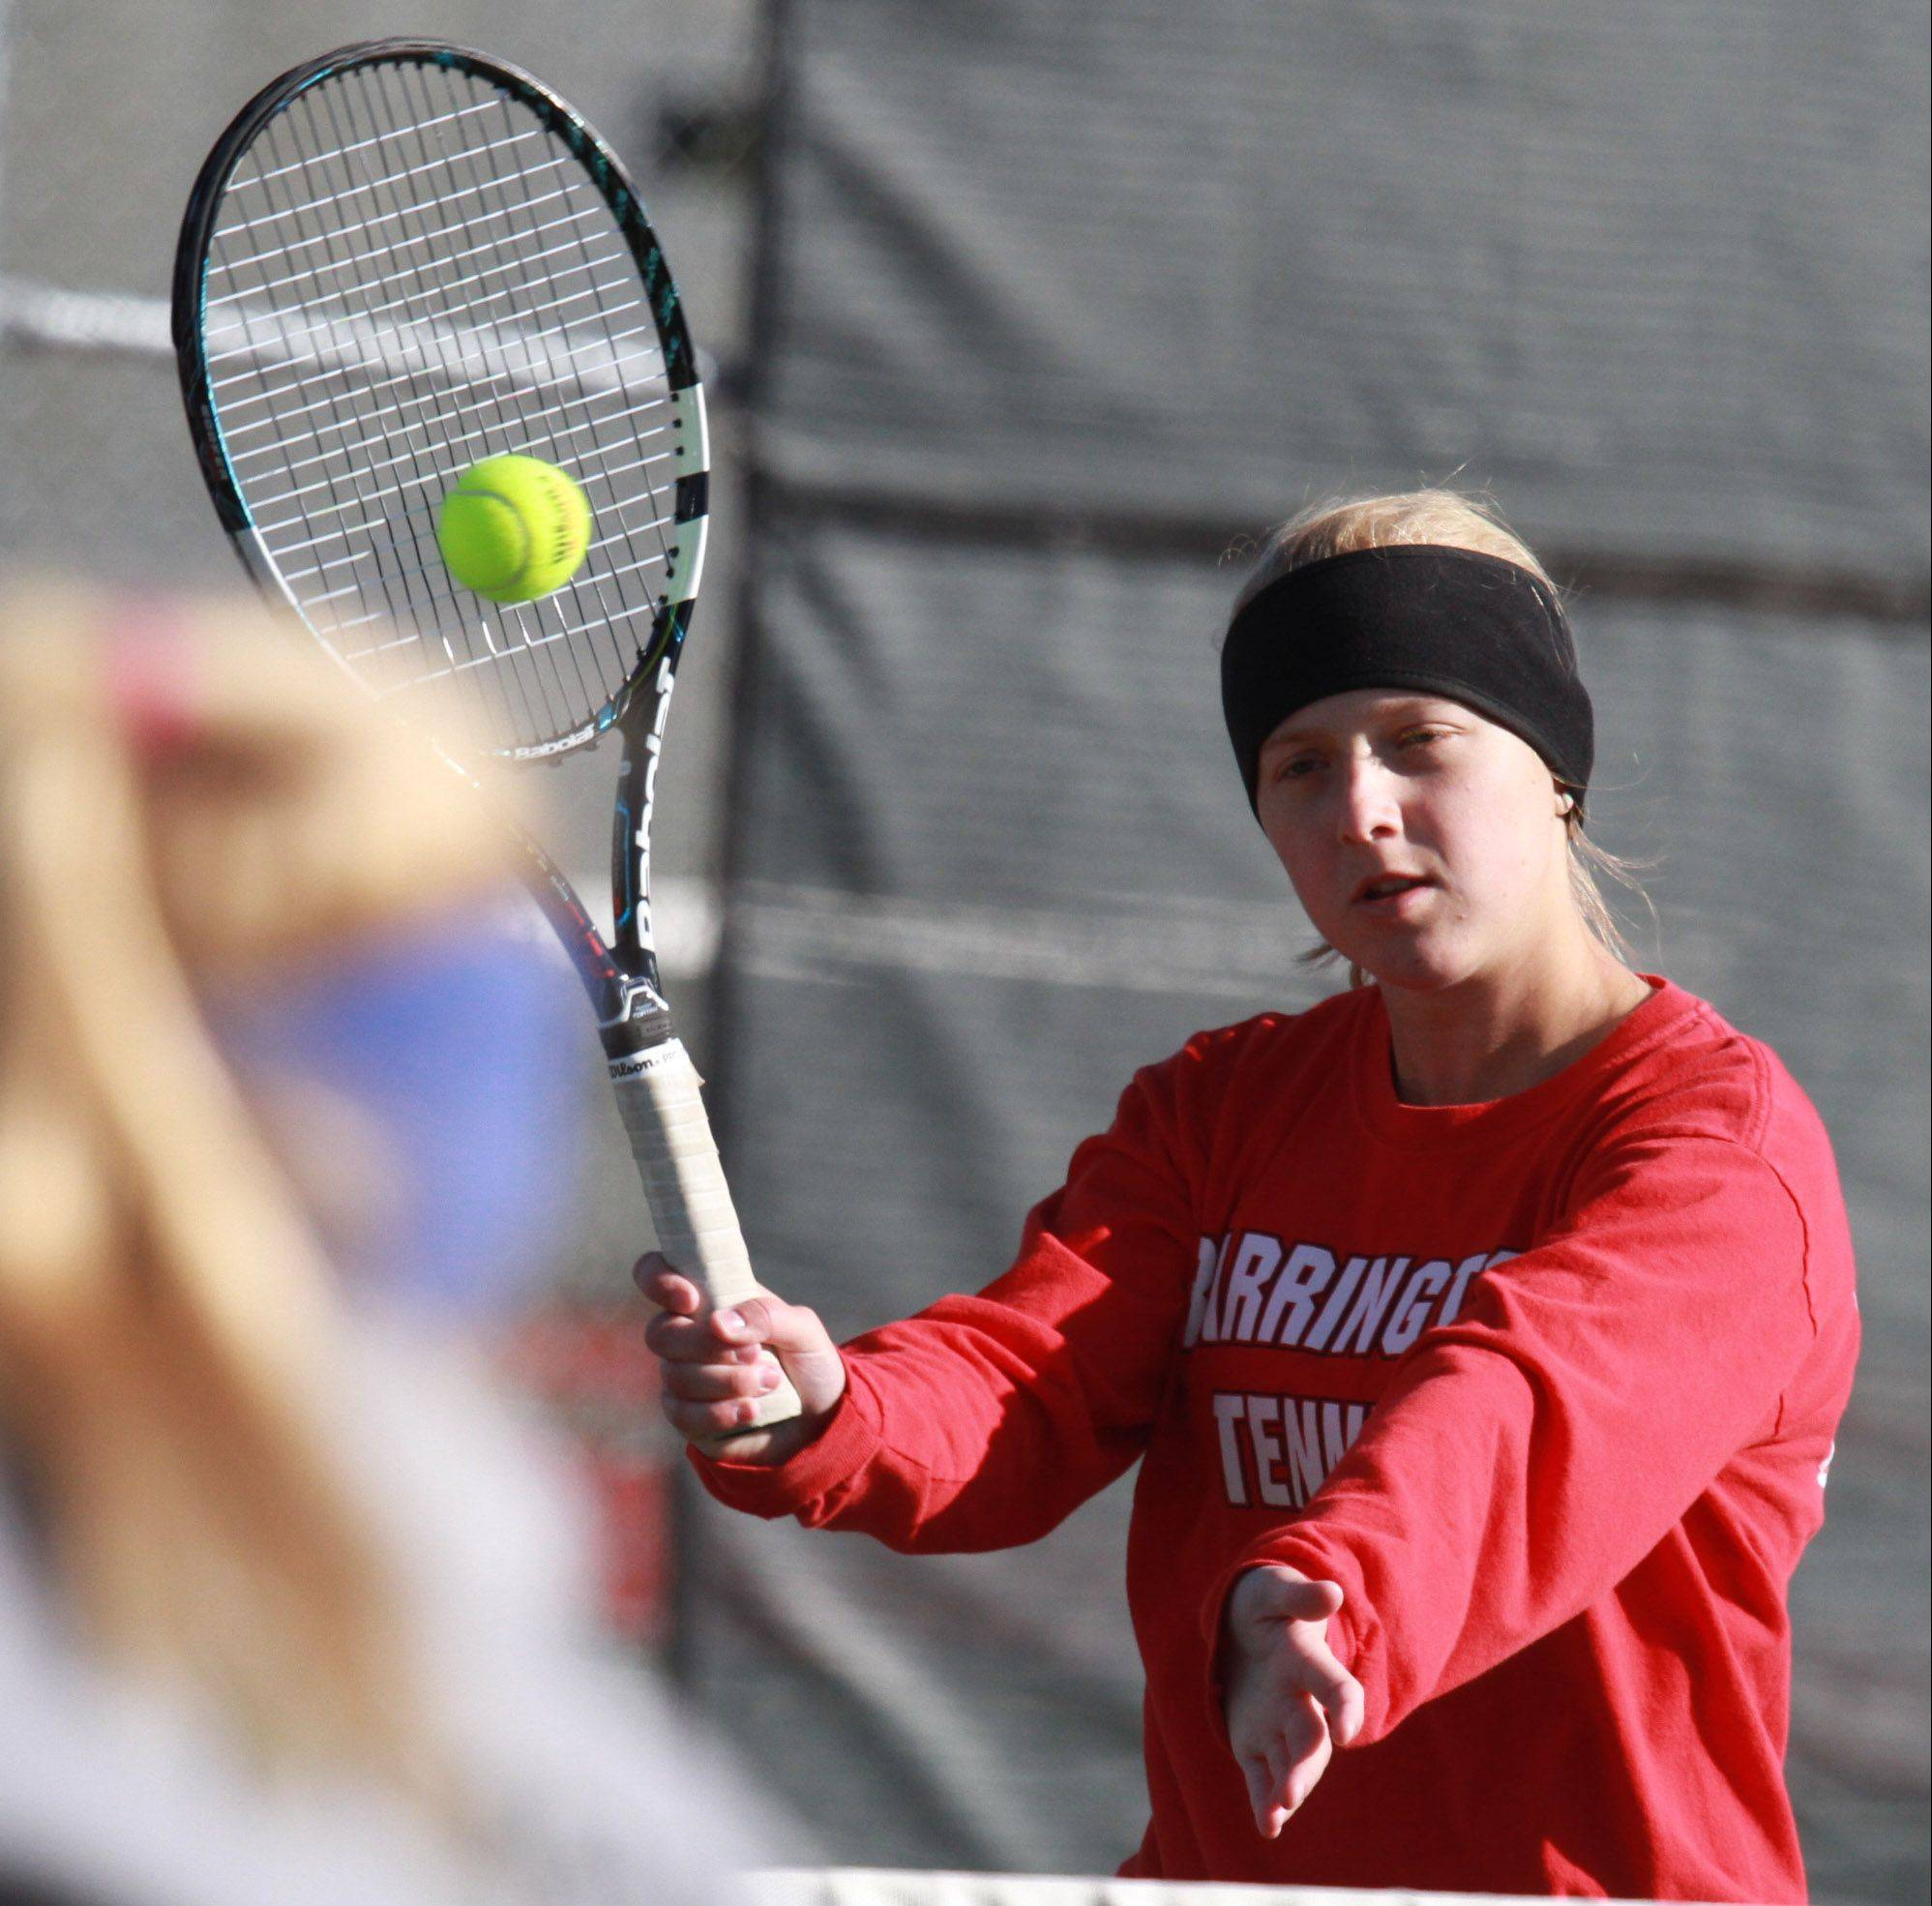 Barrington's Zoe Kasiurak returns a shot during MSL No. 1 doubles play Saturday at Prospect. Kasiurak teamed with Lucia Stumbras against Rolling Meadows' Jackie and Allie Kemph on Saturday morning in the semifinals.